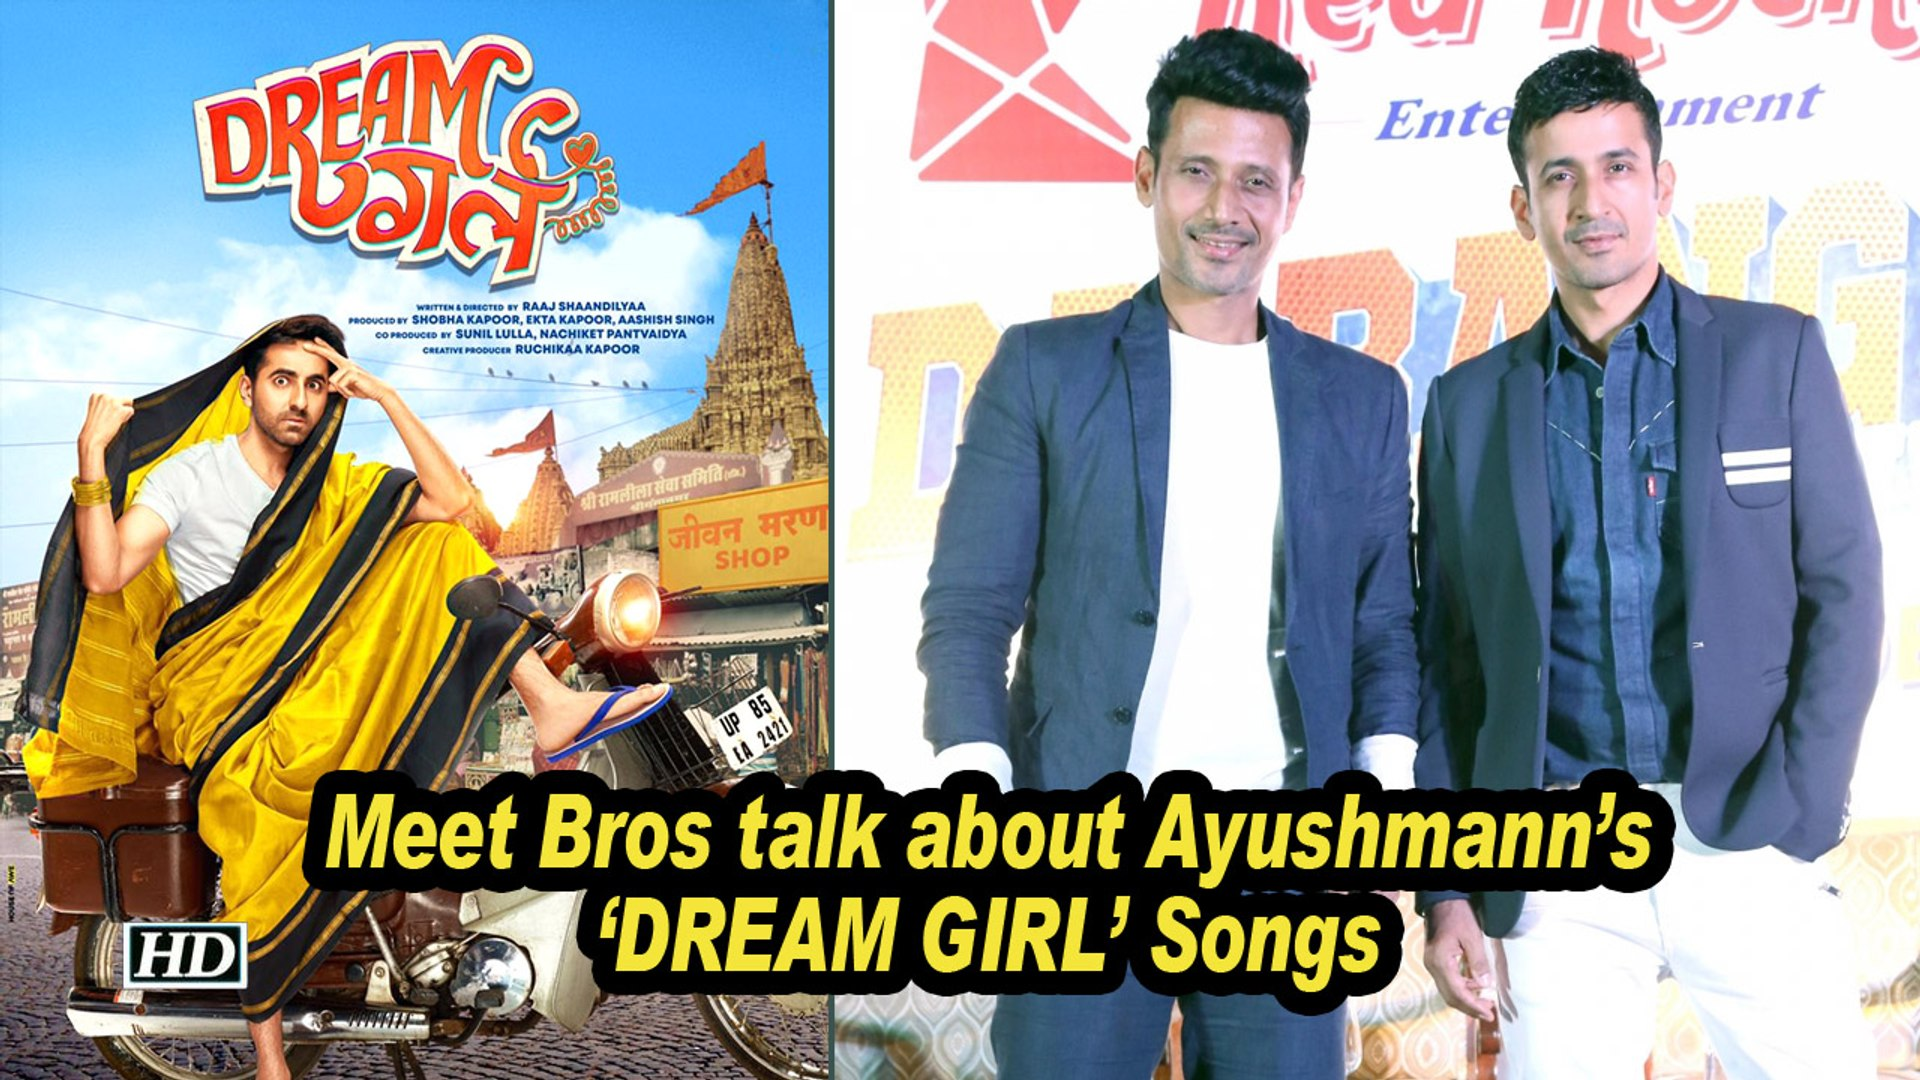 Meet Bros give details about Ayushmann's 'DREAM GIRL' Songs